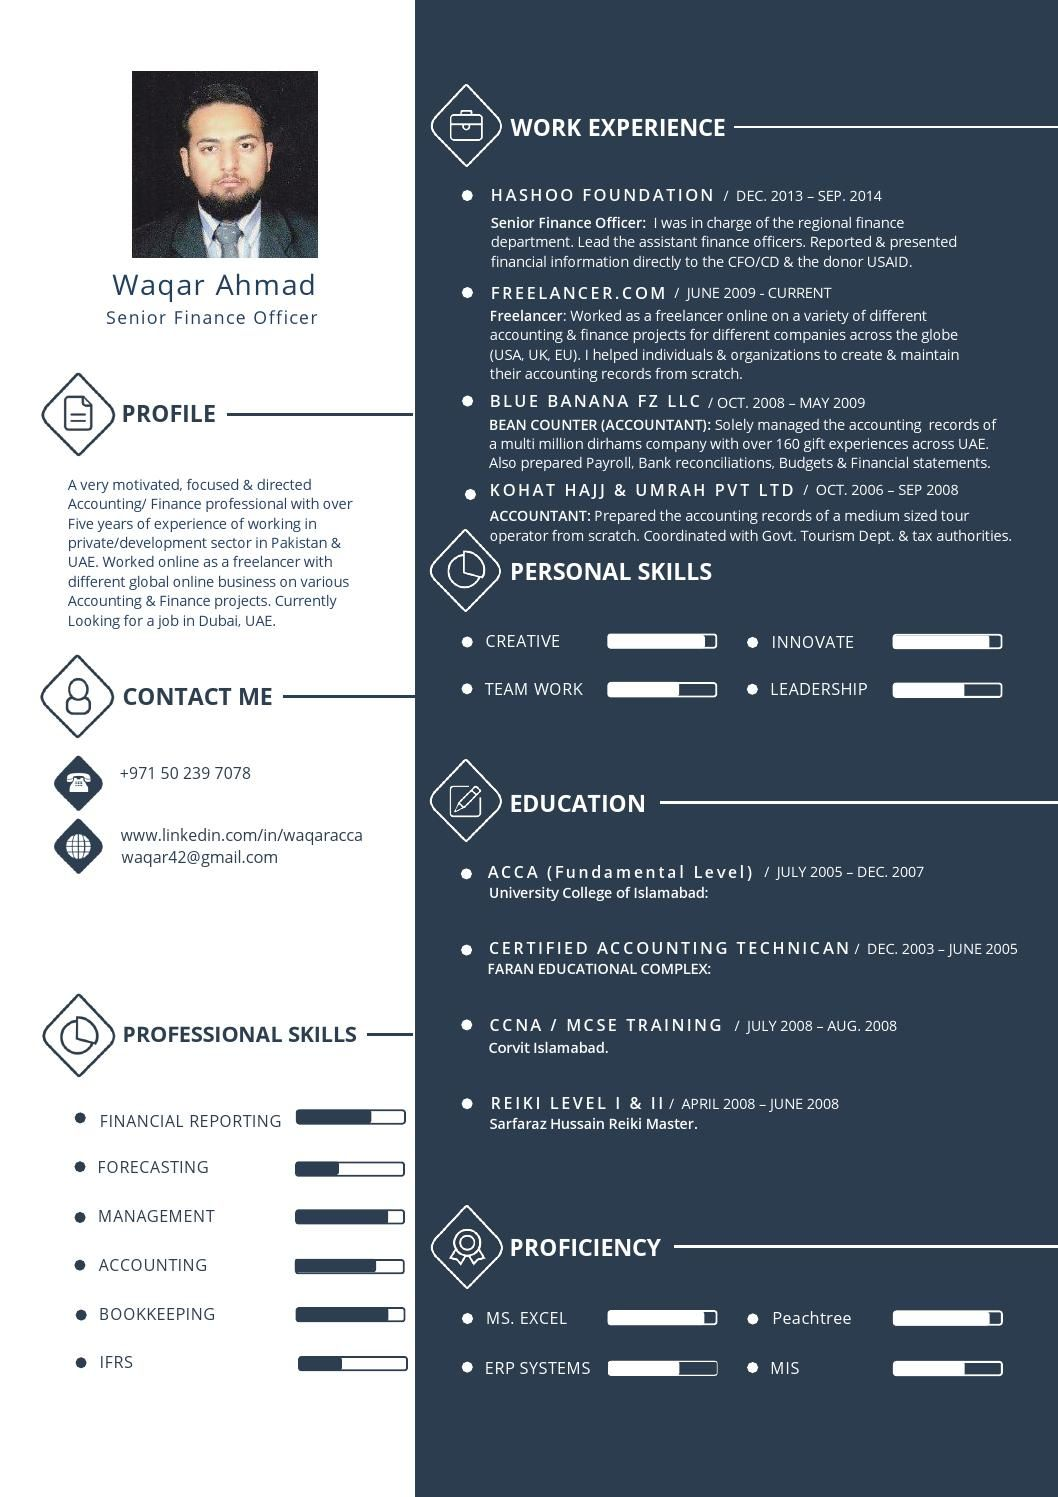 Waqar Ahmad Info graphic Resume Accounting Finance Dubai UAE ...